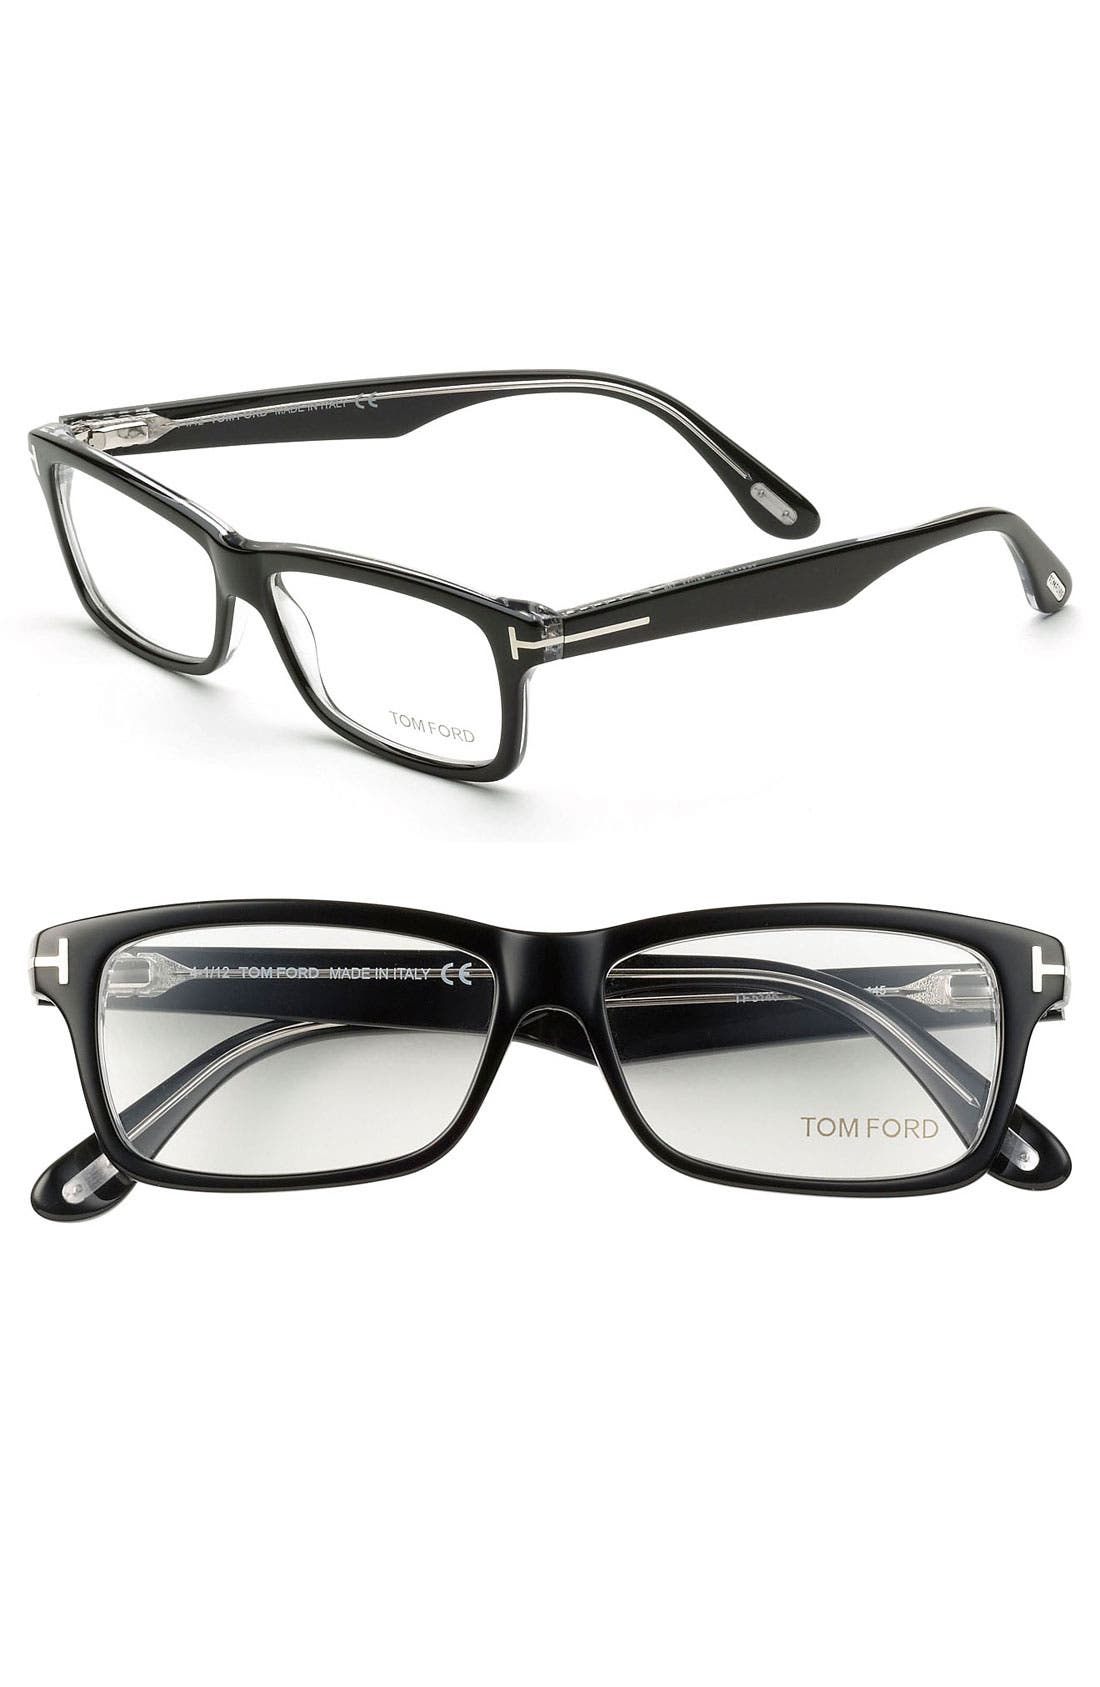 Alternate Image 1 Selected - Tom Ford Fashion 54mm Optical Glasses (Online Only)